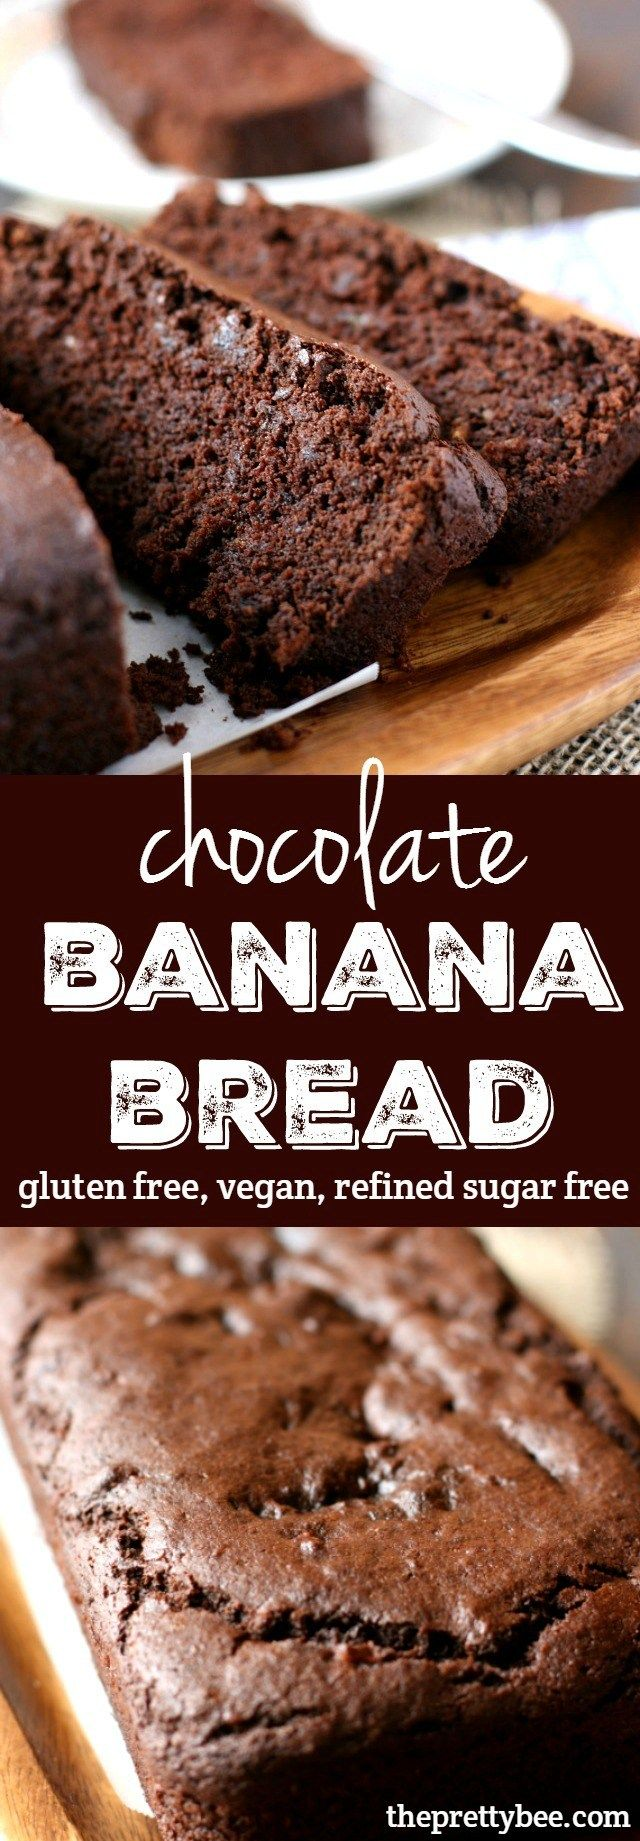 Chocolate Banana Bread (Gluten Free, Vegan, Refined Sugar Free). - The Pretty Bee - http://theprettybee.com/2016/04/chocolate-banana-bread-gluten-free-vegan-refined-sugar-free.html